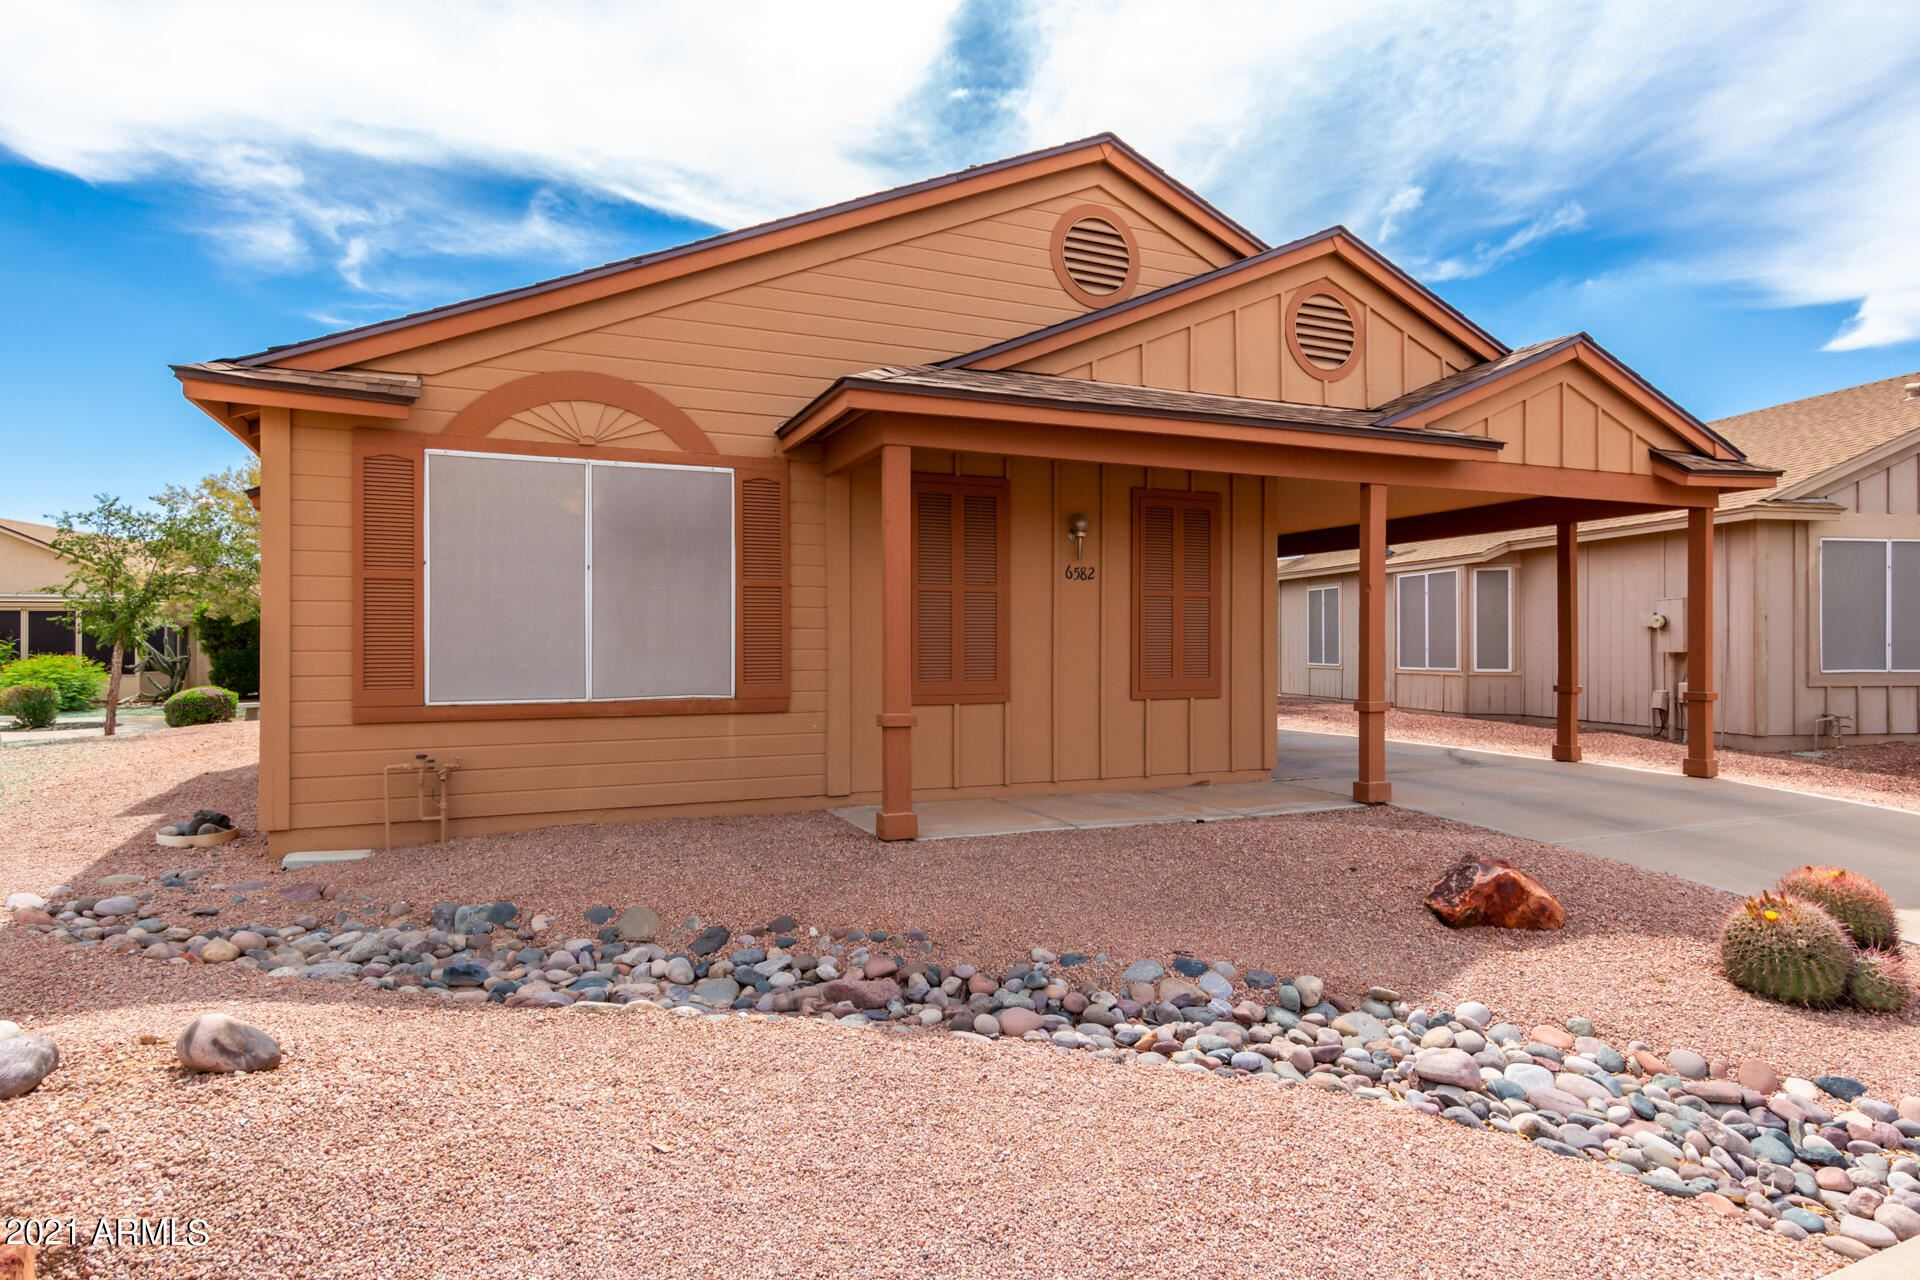 Photo of 6582 S LAKE FOREST Drive, Chandler, AZ 85249 (MLS # 6272008)